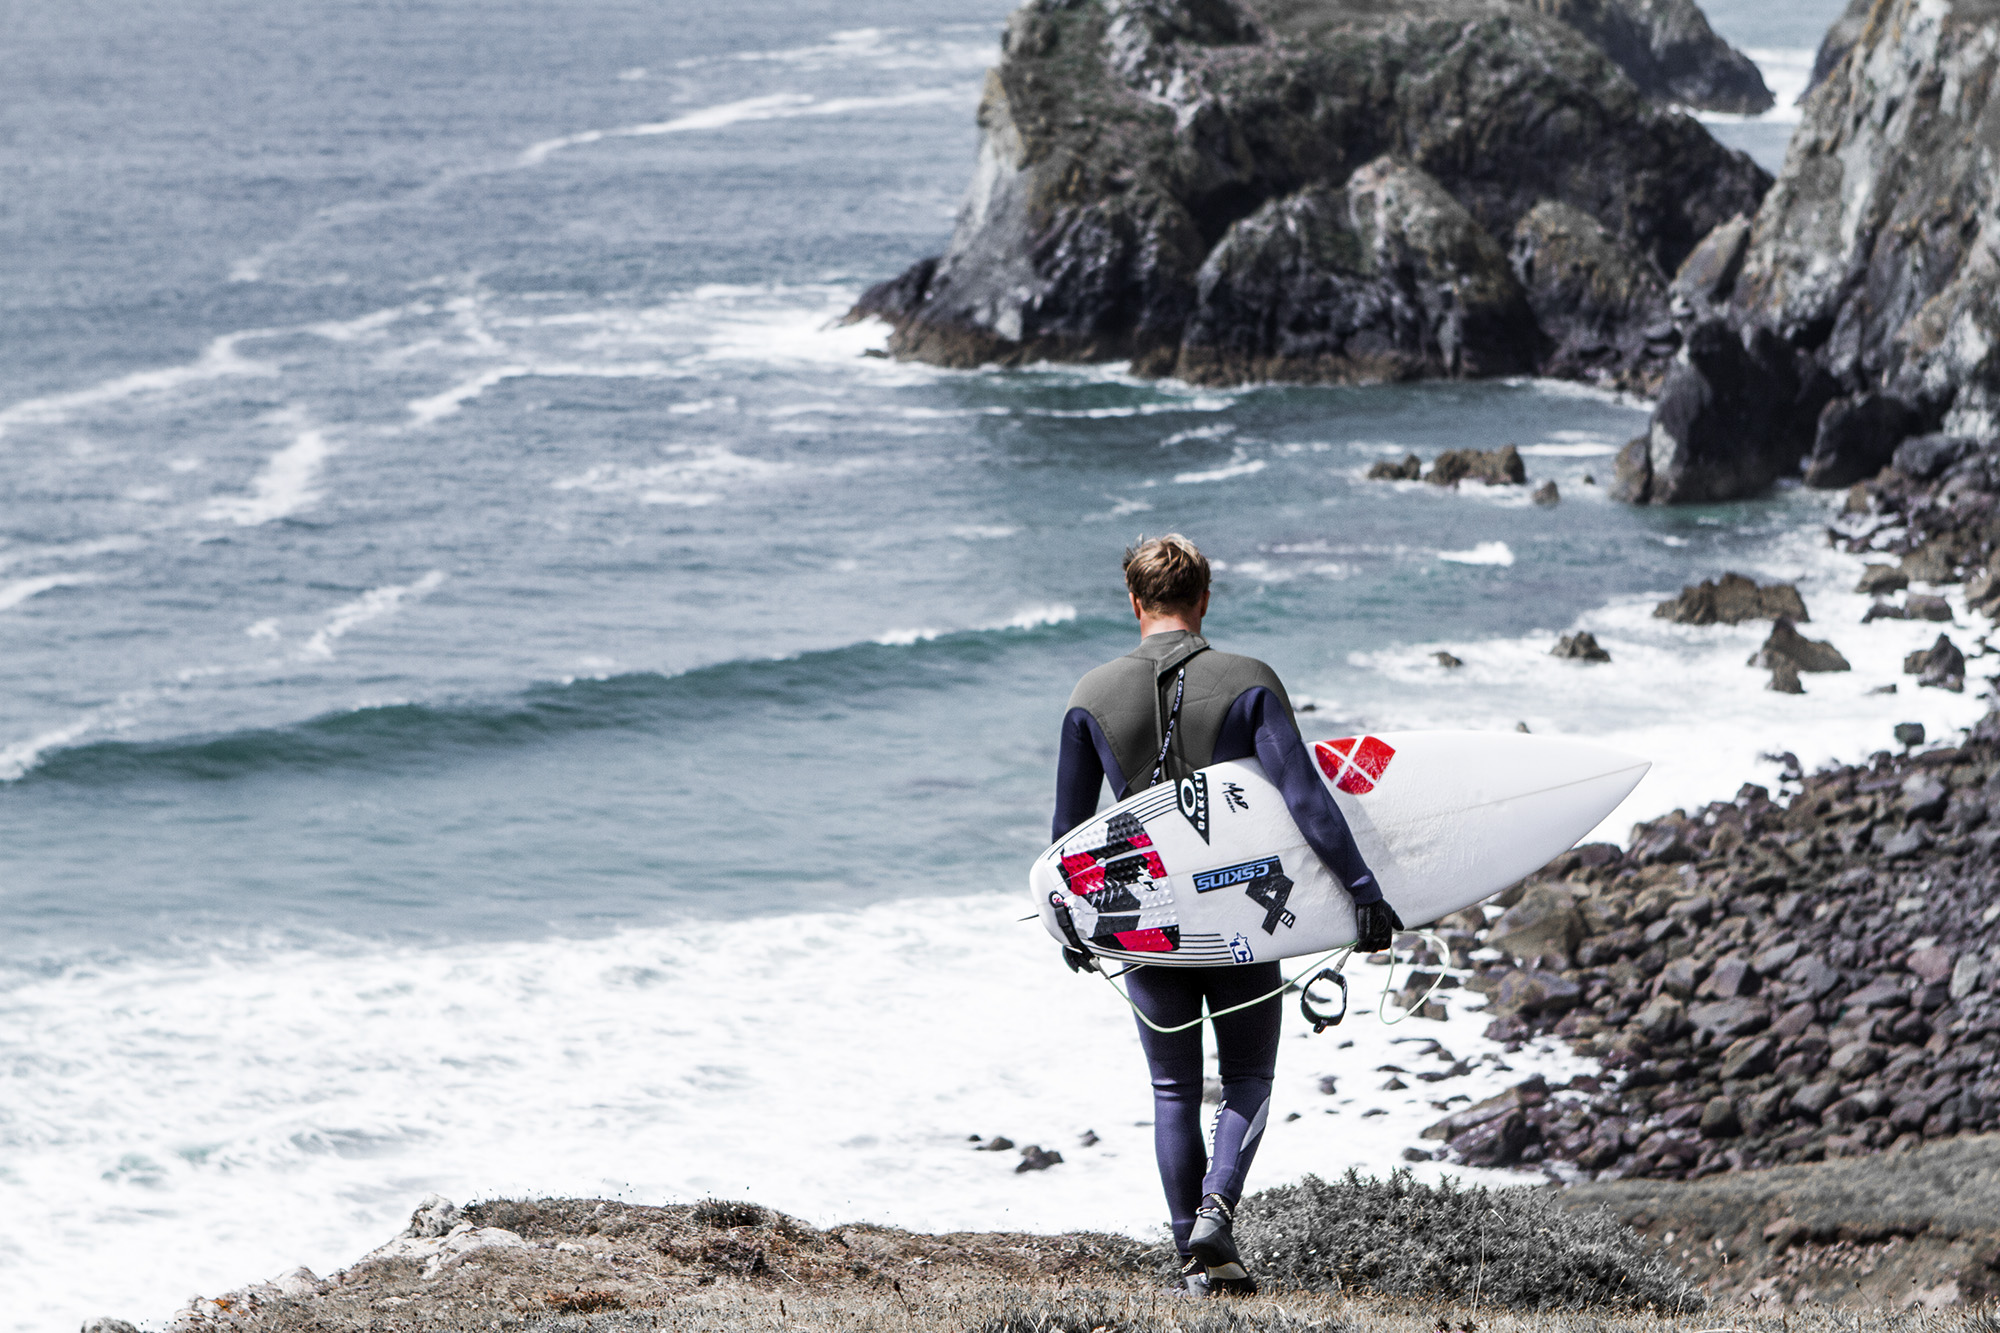 There's more to surf films than just surfing...